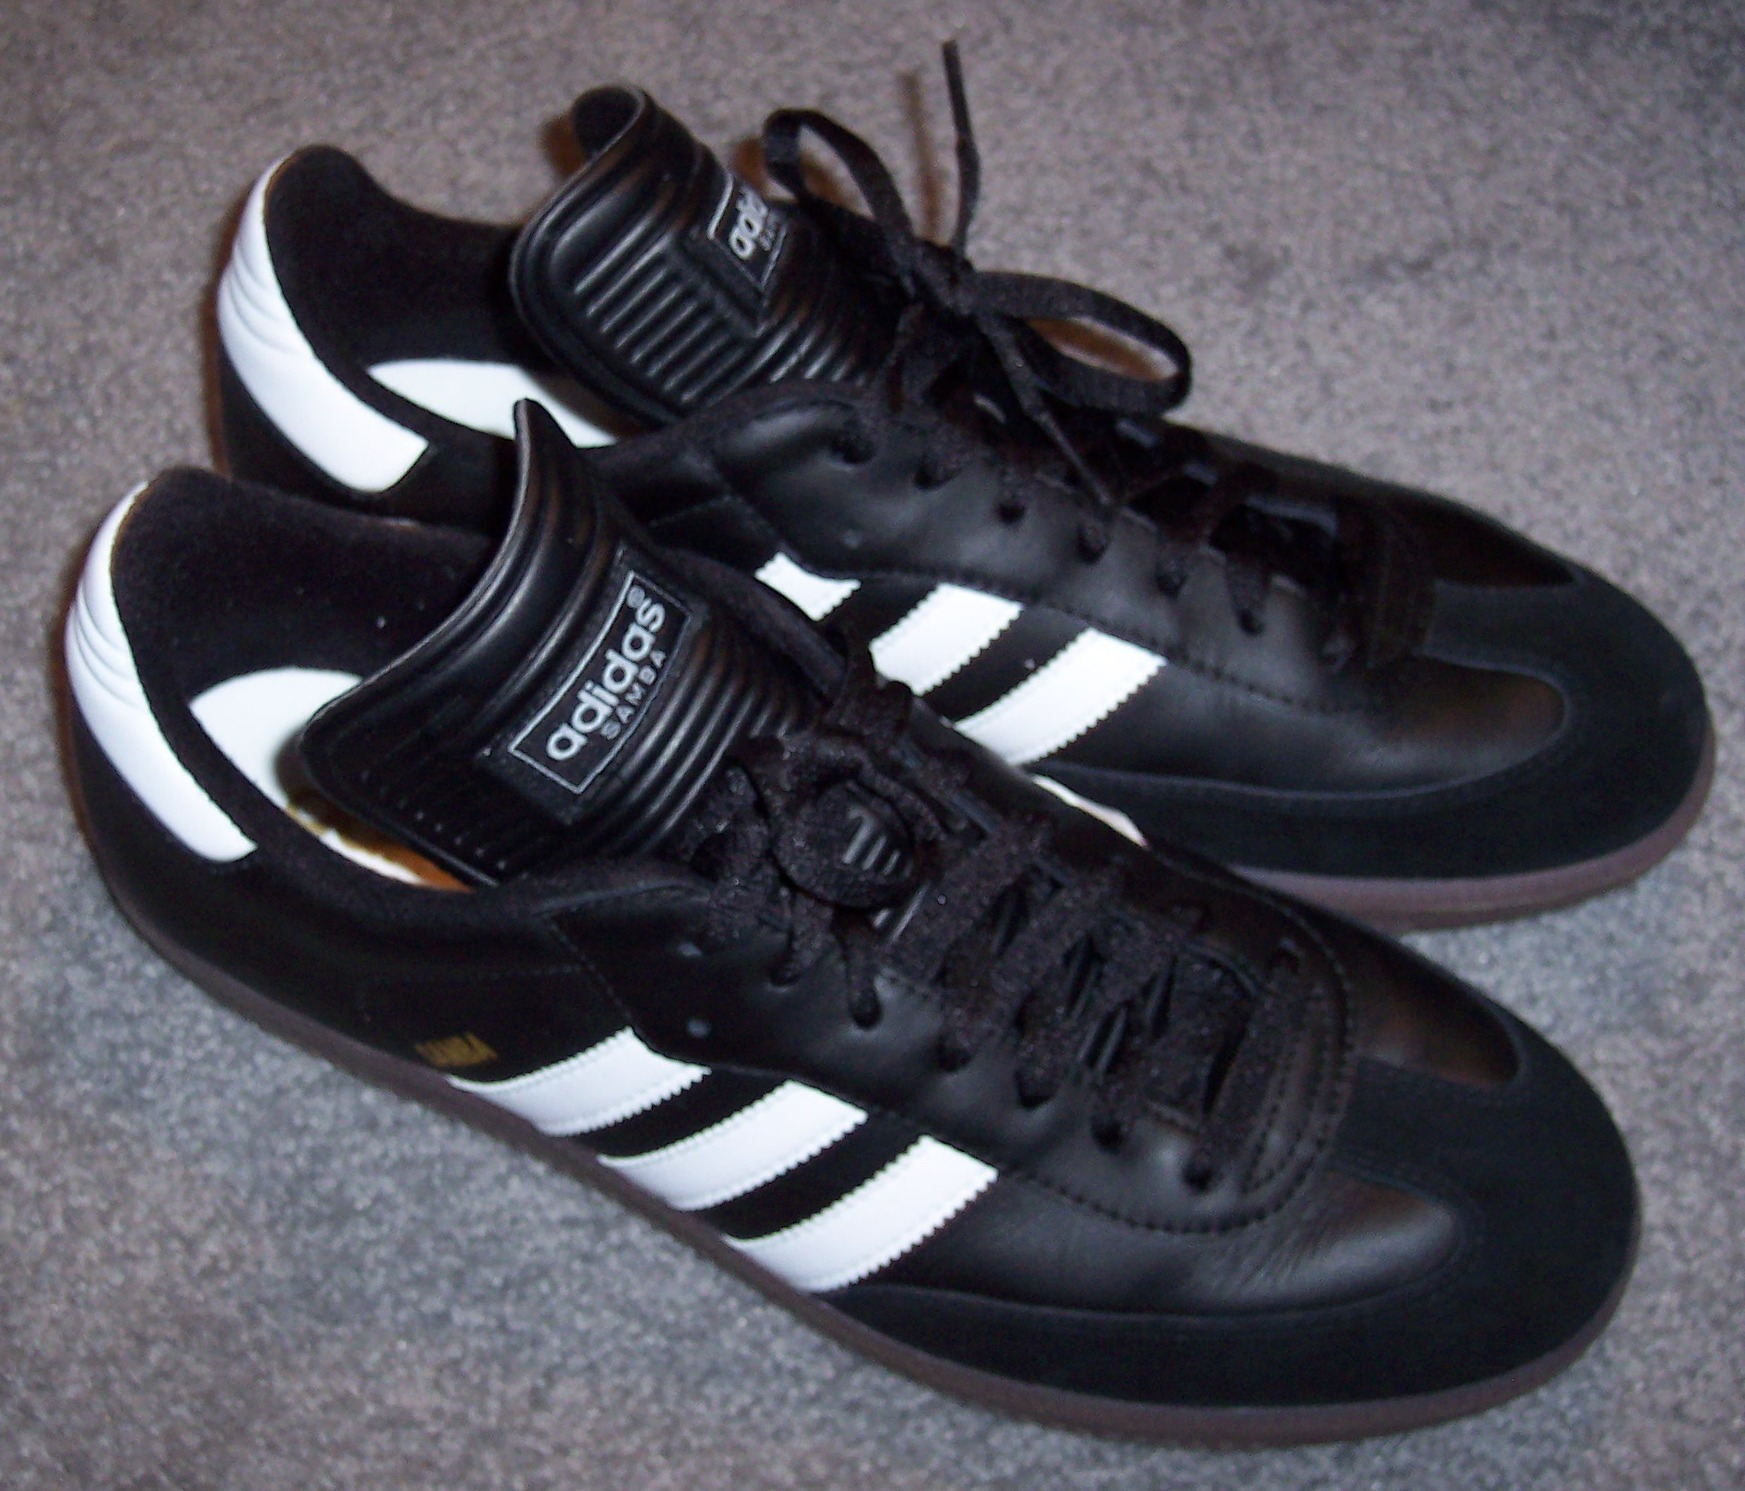 File:Adidas Samba sneakers, Originals branch.JPG